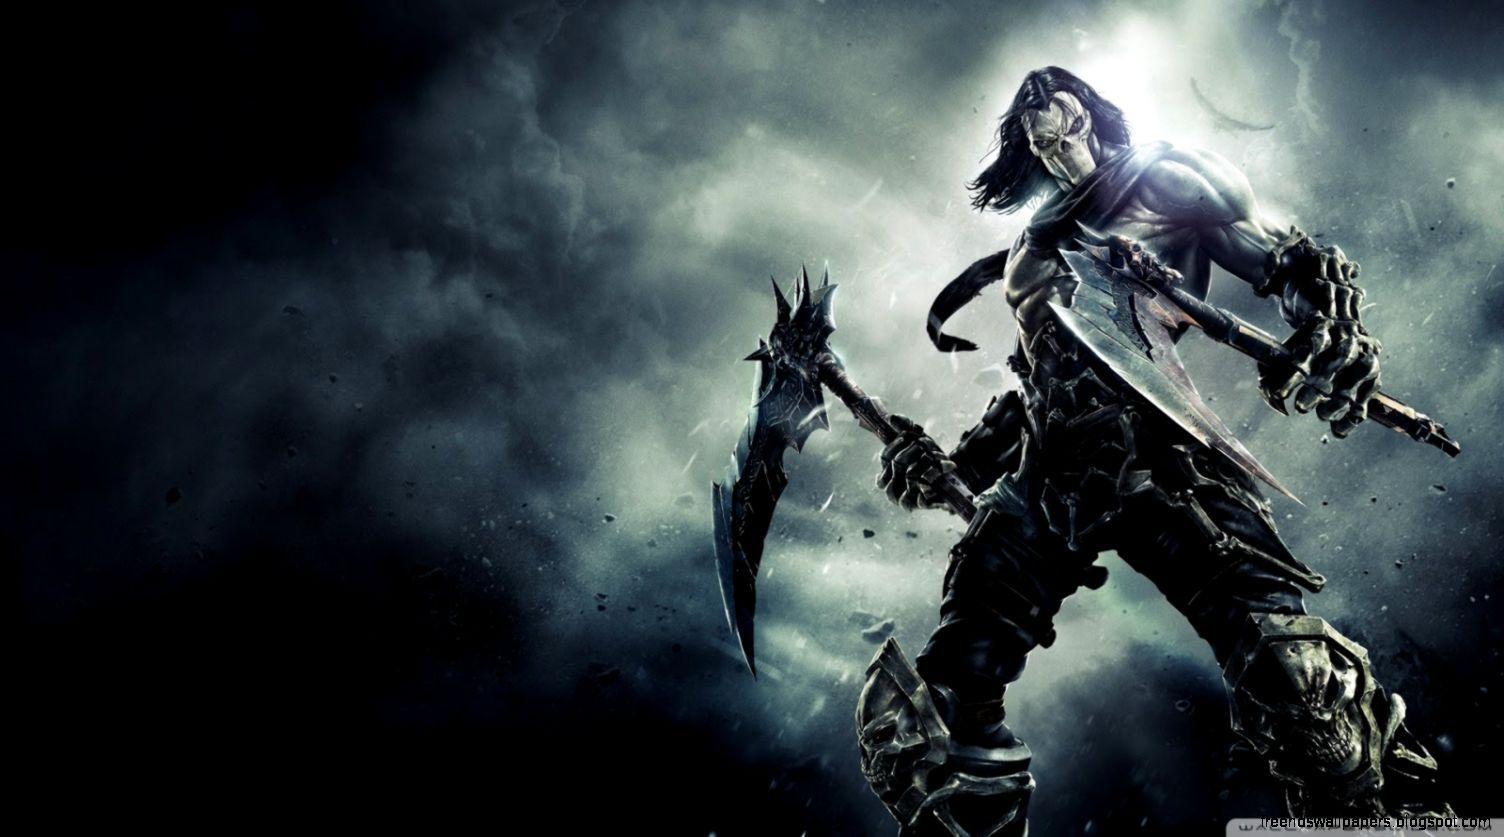 Anime Full Hd Wallpapers 1920 1080 Anime Wallpapers 1080p 60